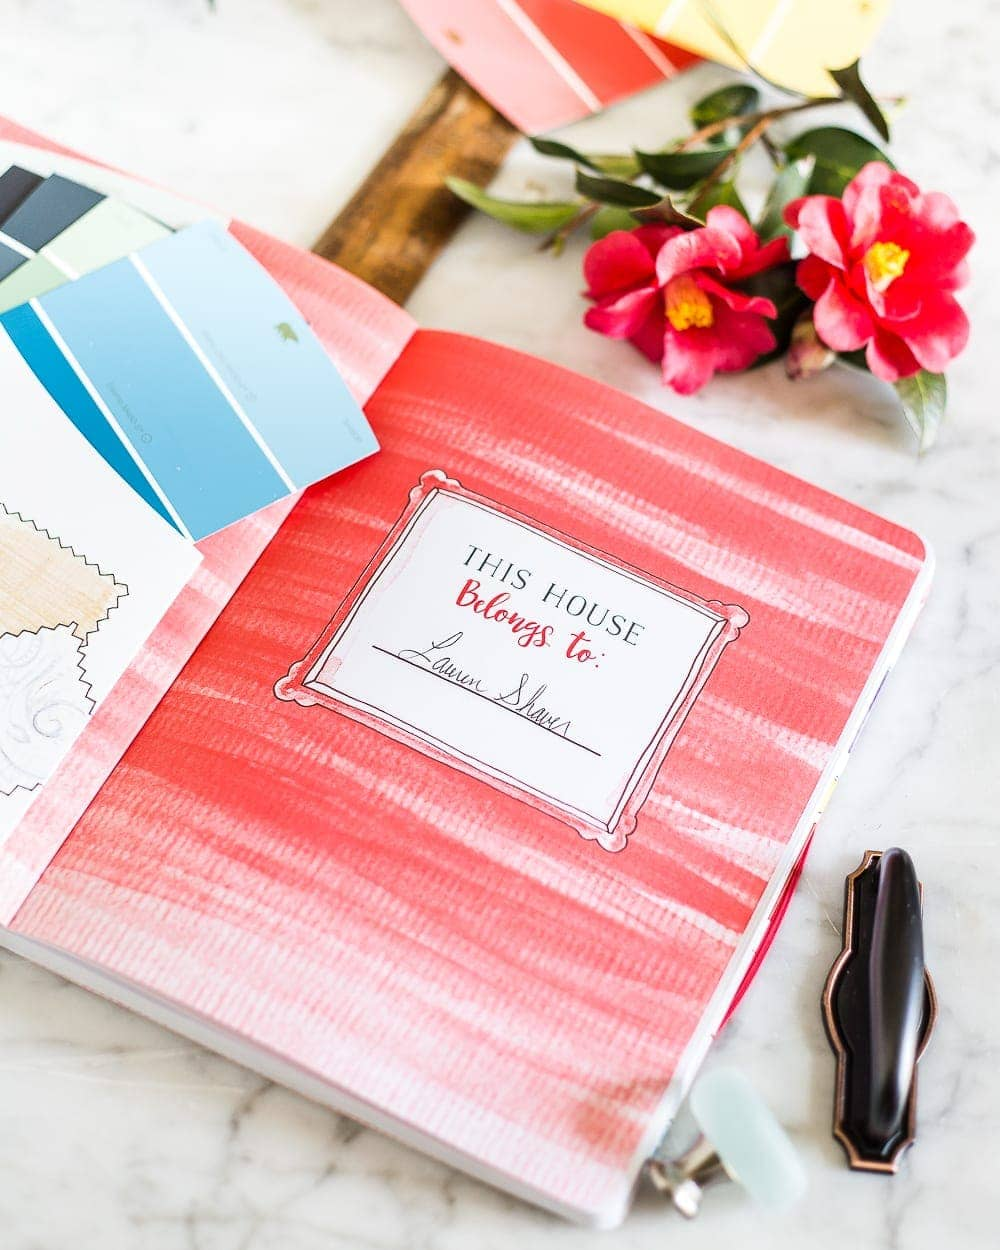 A review of The DIY Home Planner - a step-by-step guide for decorating your house like a pro and working within a budget. #homedecorating #bookreview #diyhomedecor #diyhomeplanner